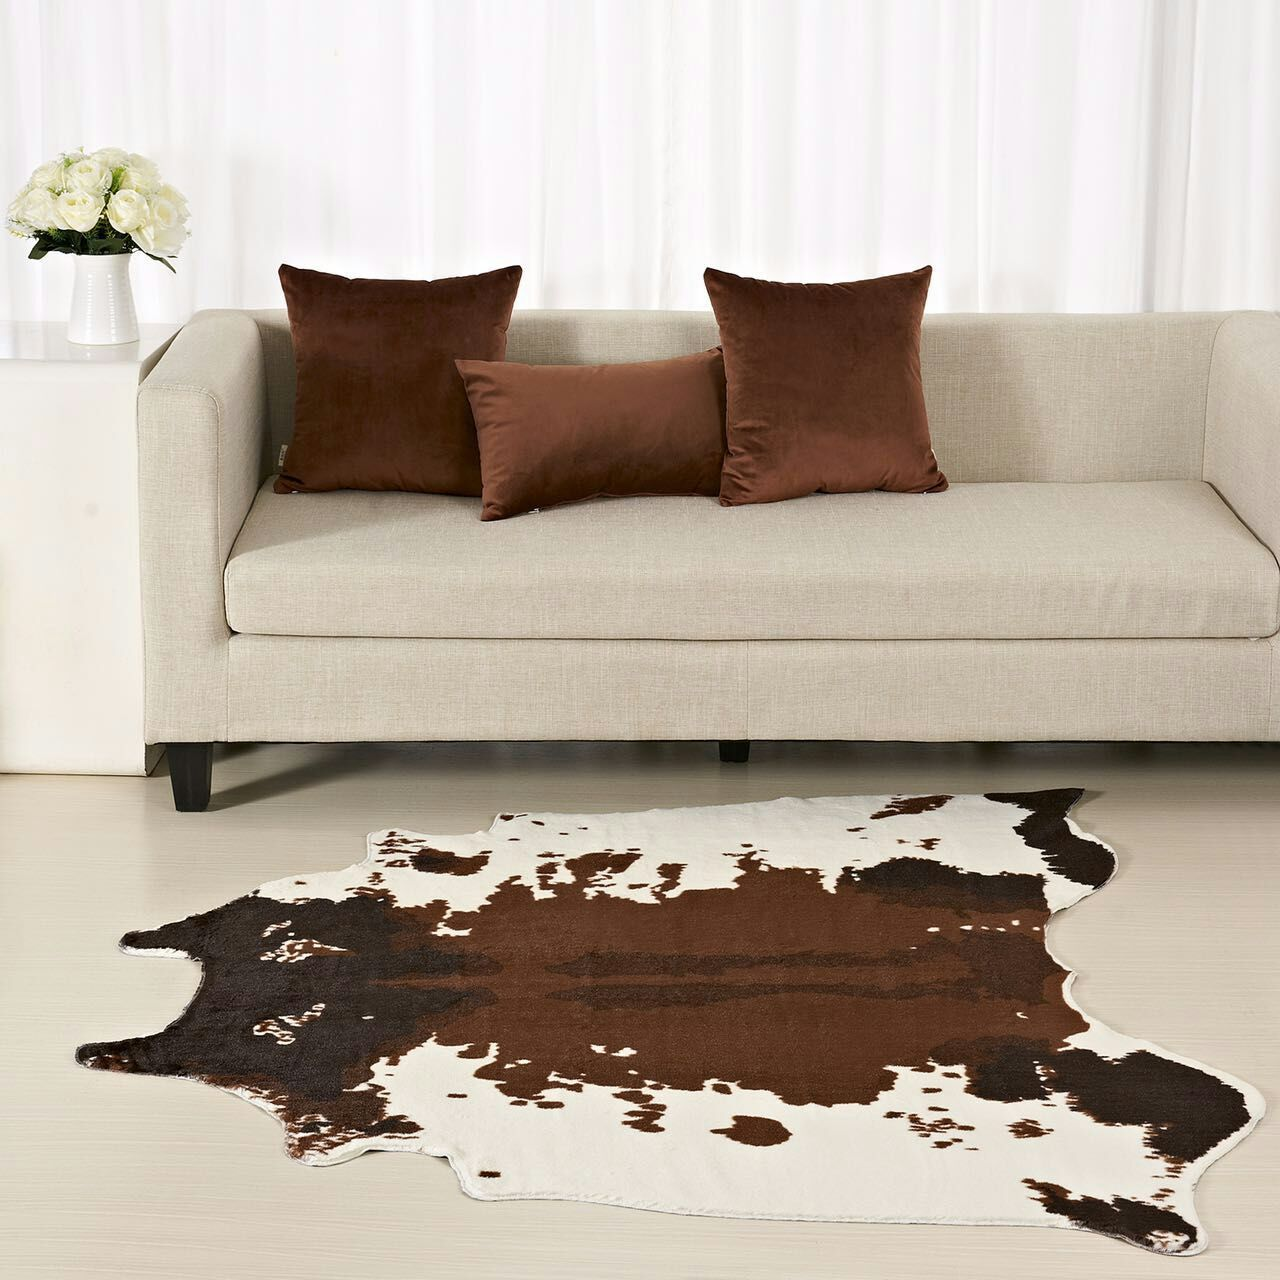 Us 39 69 22 Off Brown Cowhide Rug Zebra Carpet Creative 150 130 Cm Home Decoration Faux Skin Mat For Living Room Bedroom Carpets In From